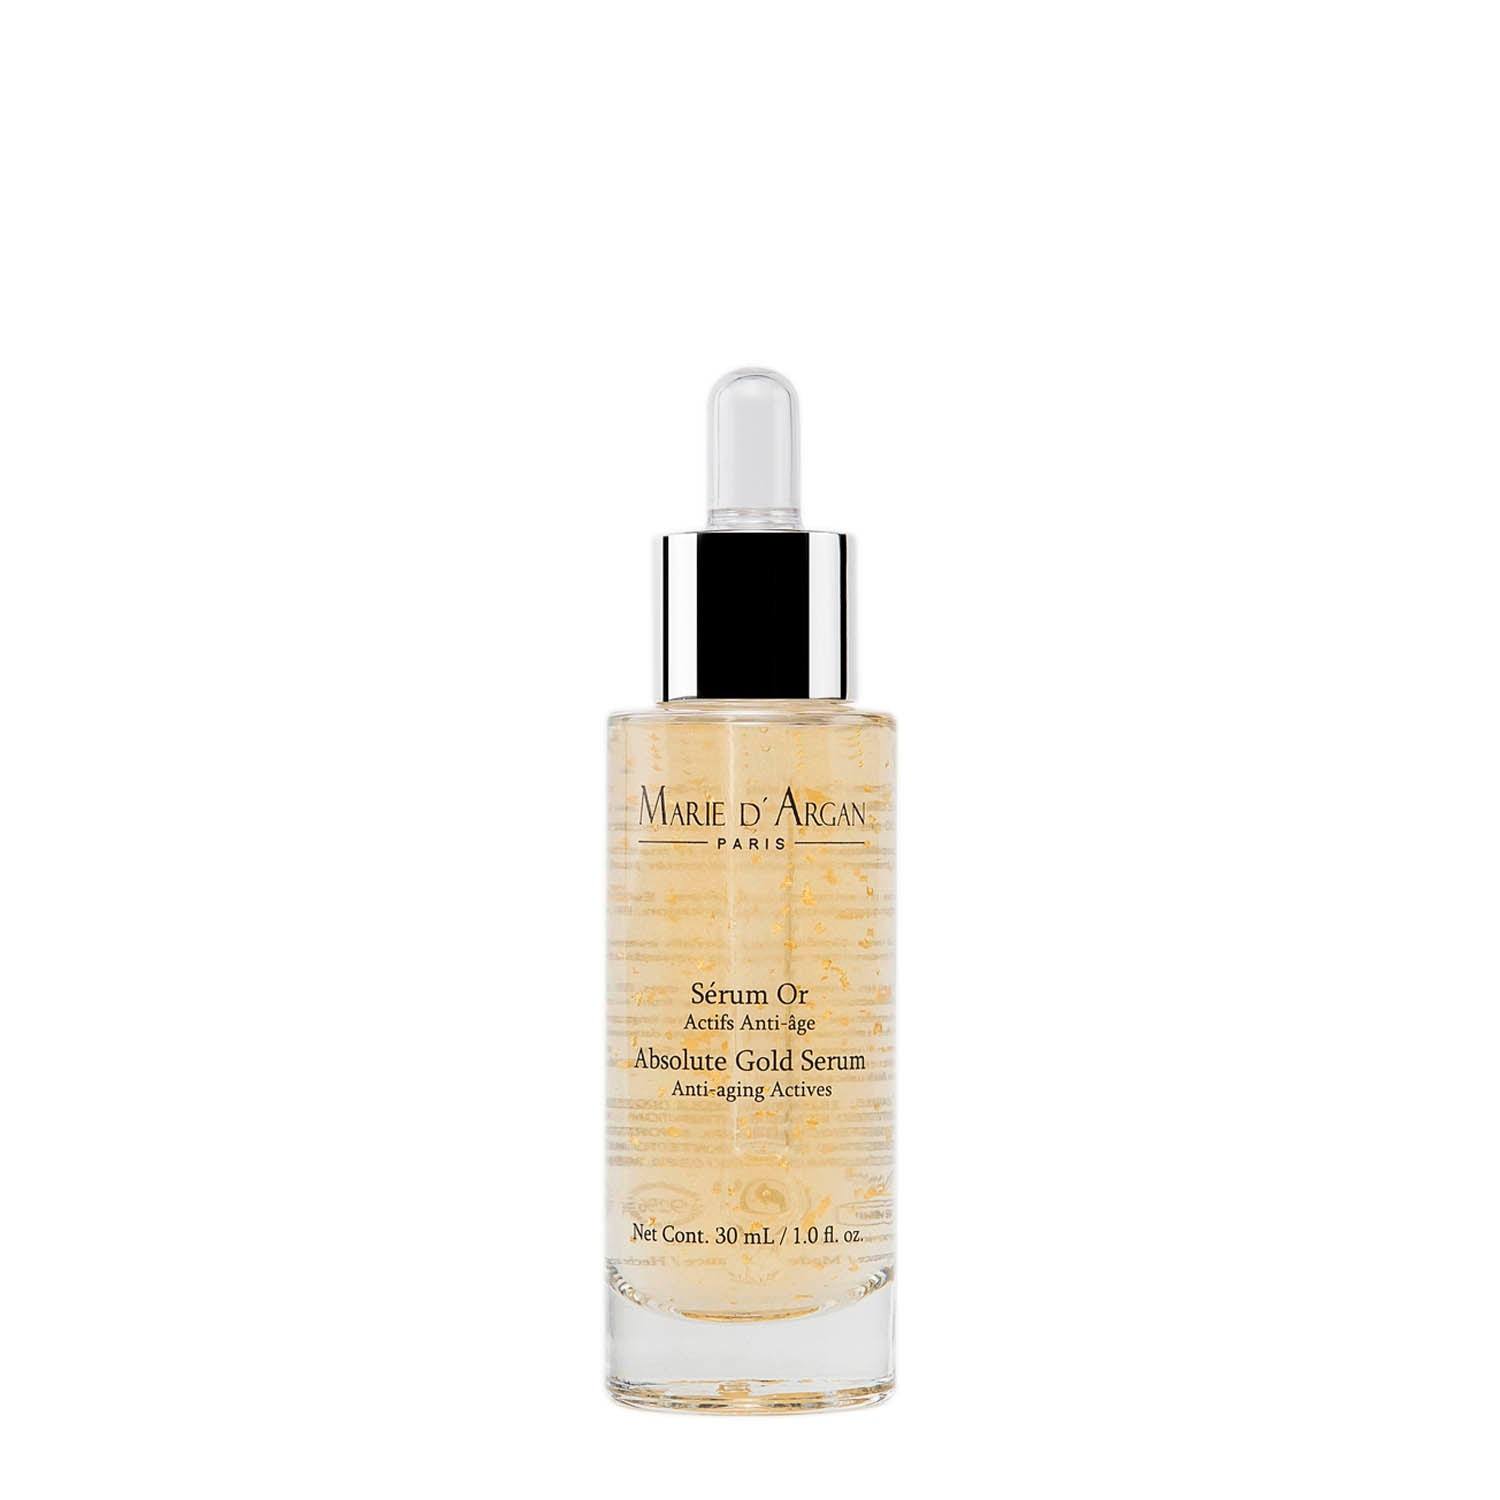 Serum de Oro Glowing effect - Marie d´Argan a domicilio